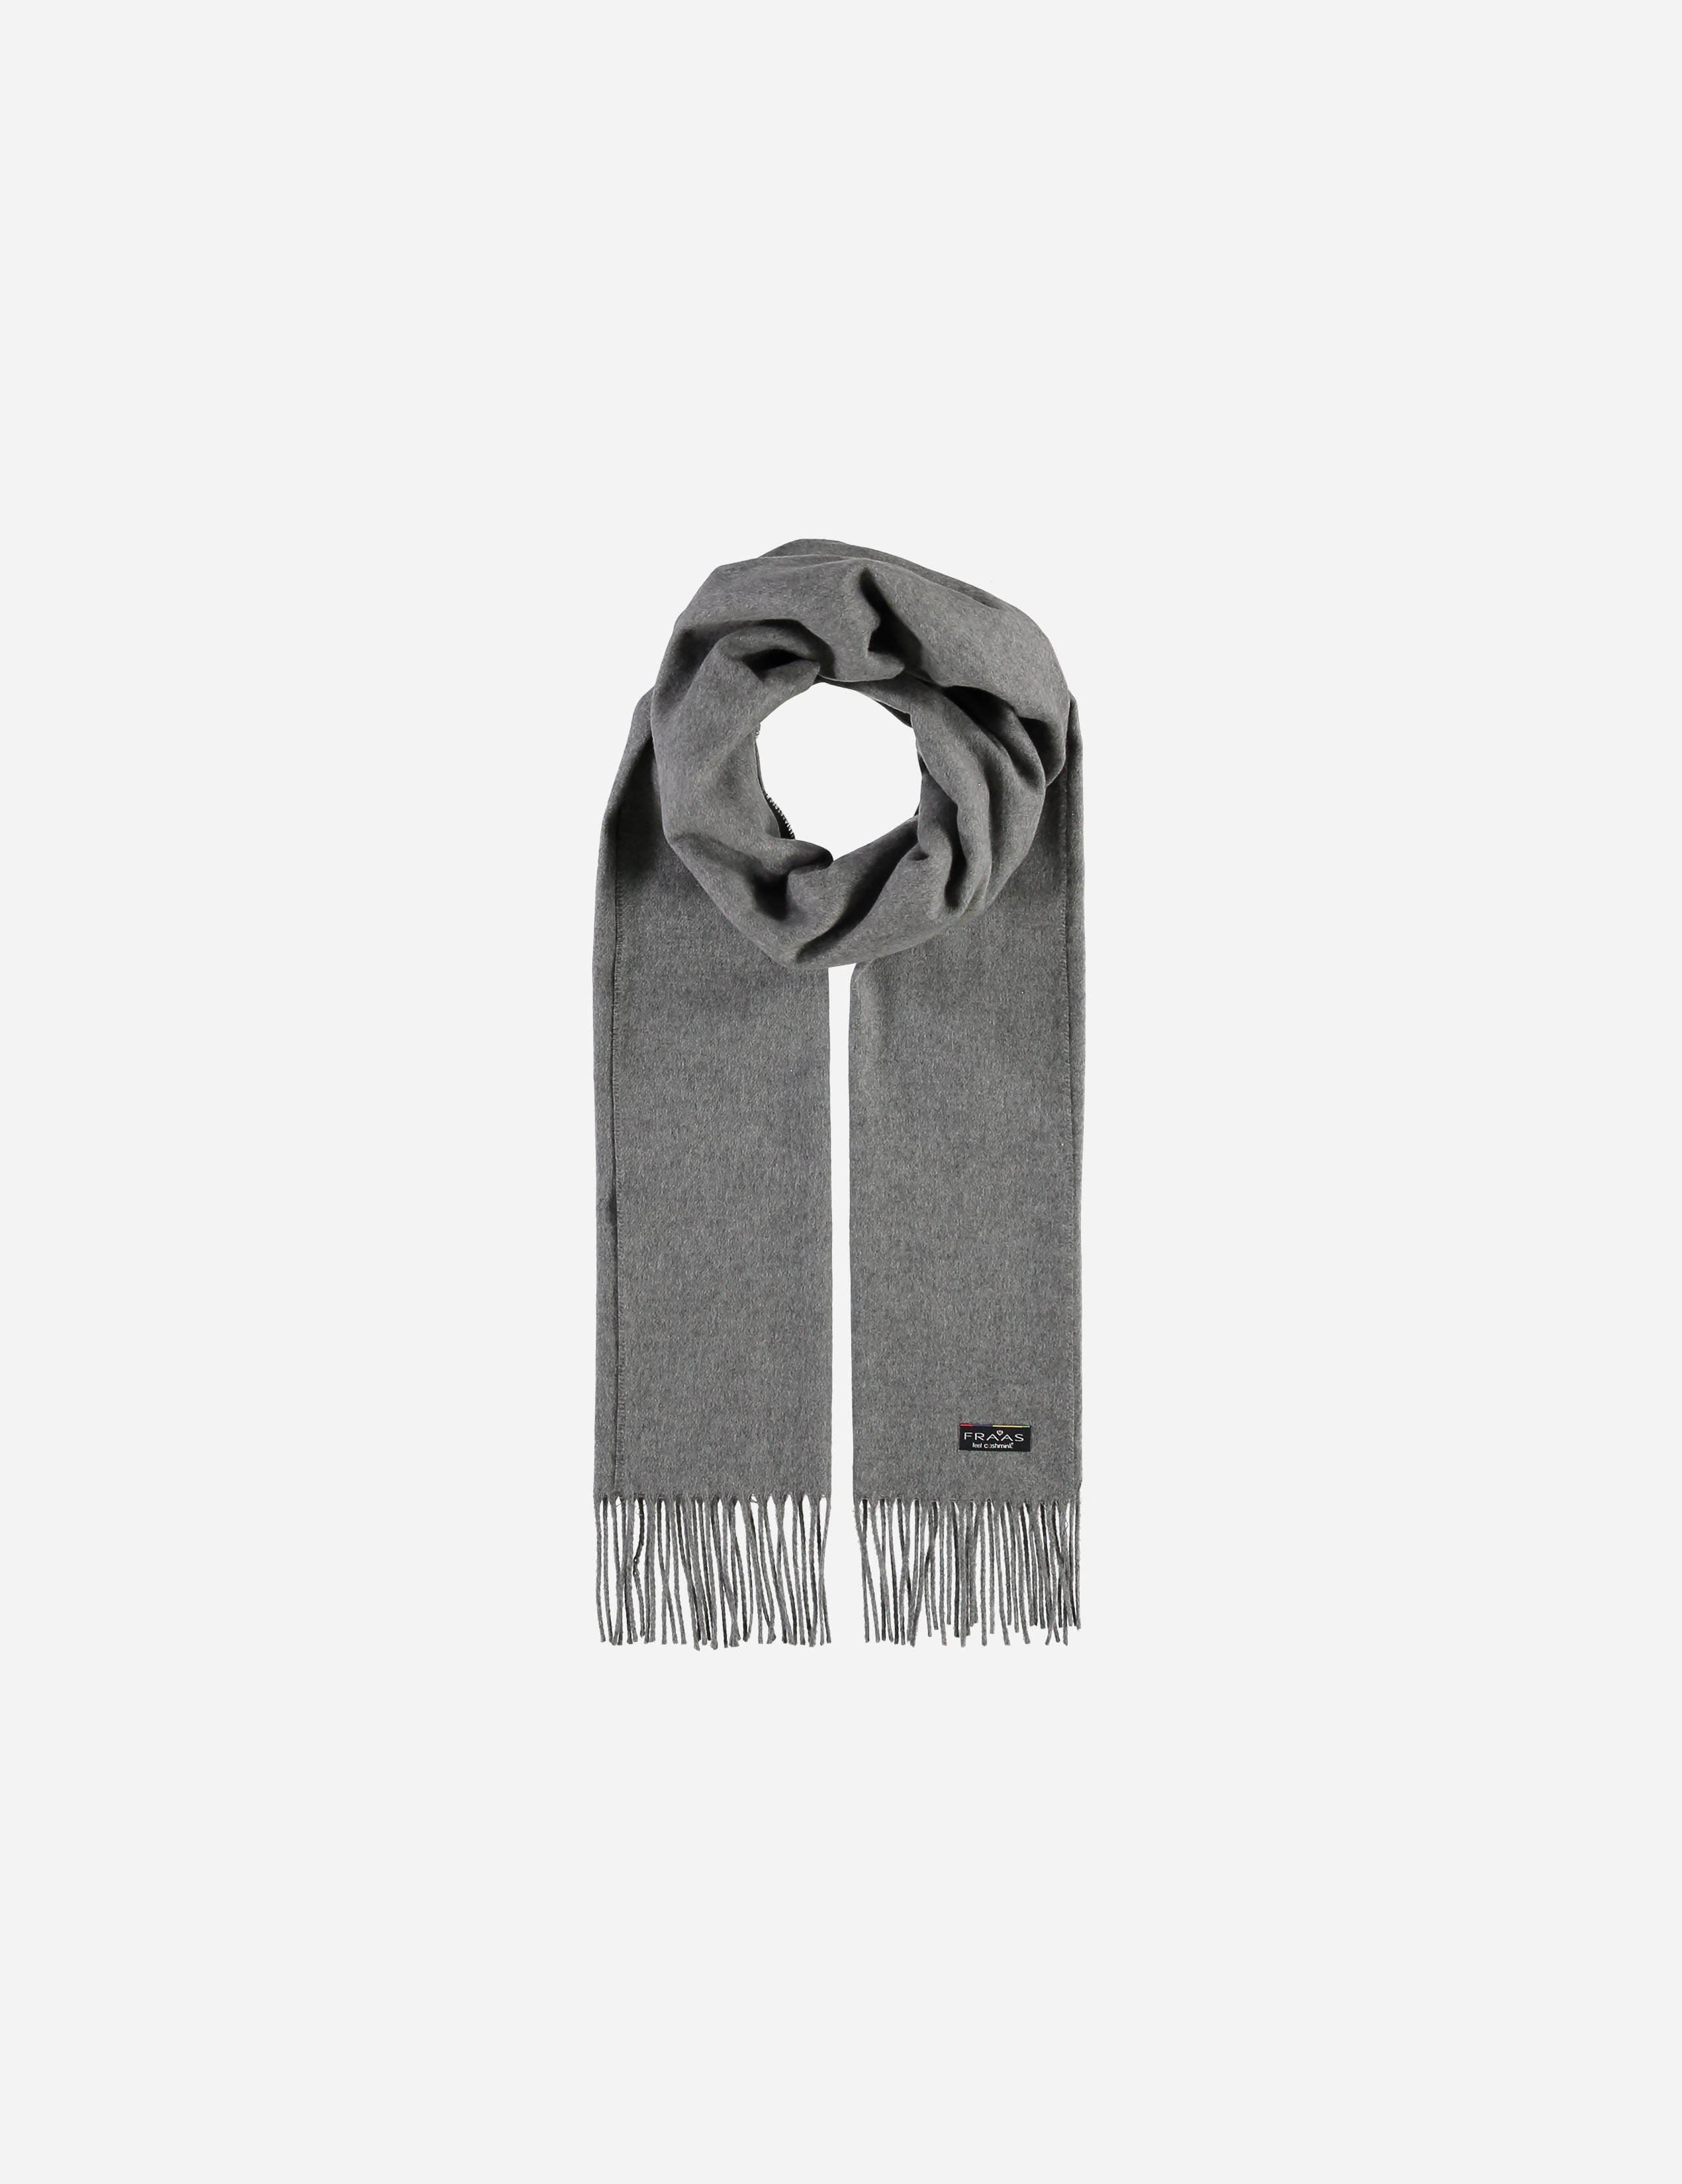 Solid Grey- $32.00 Cashmink, Made in Germany 4035419045539